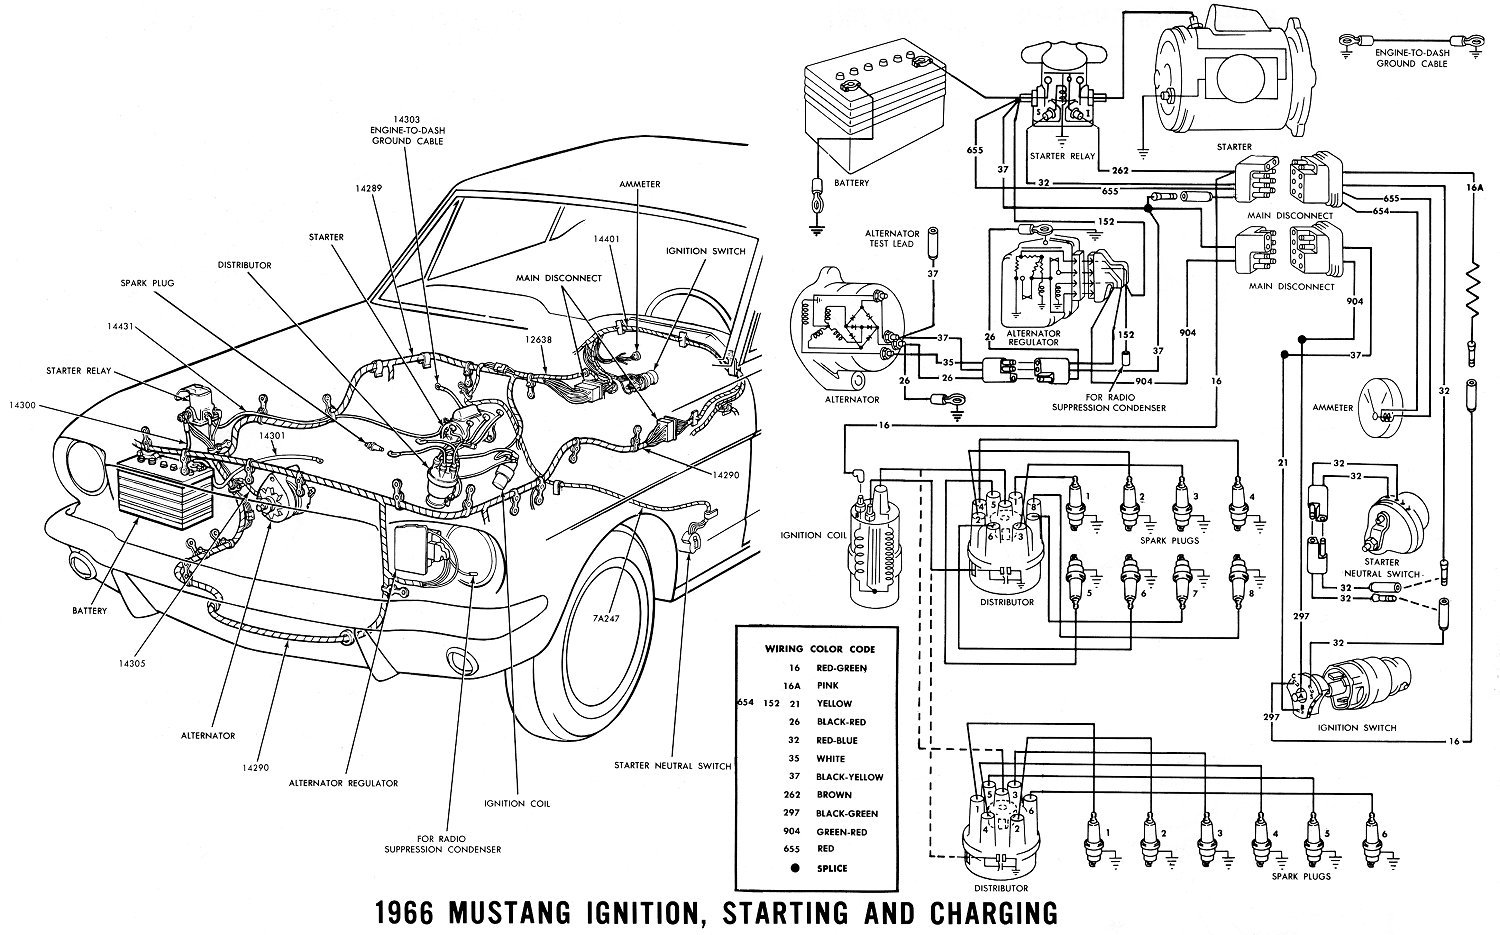 1968 v8 engine diagram